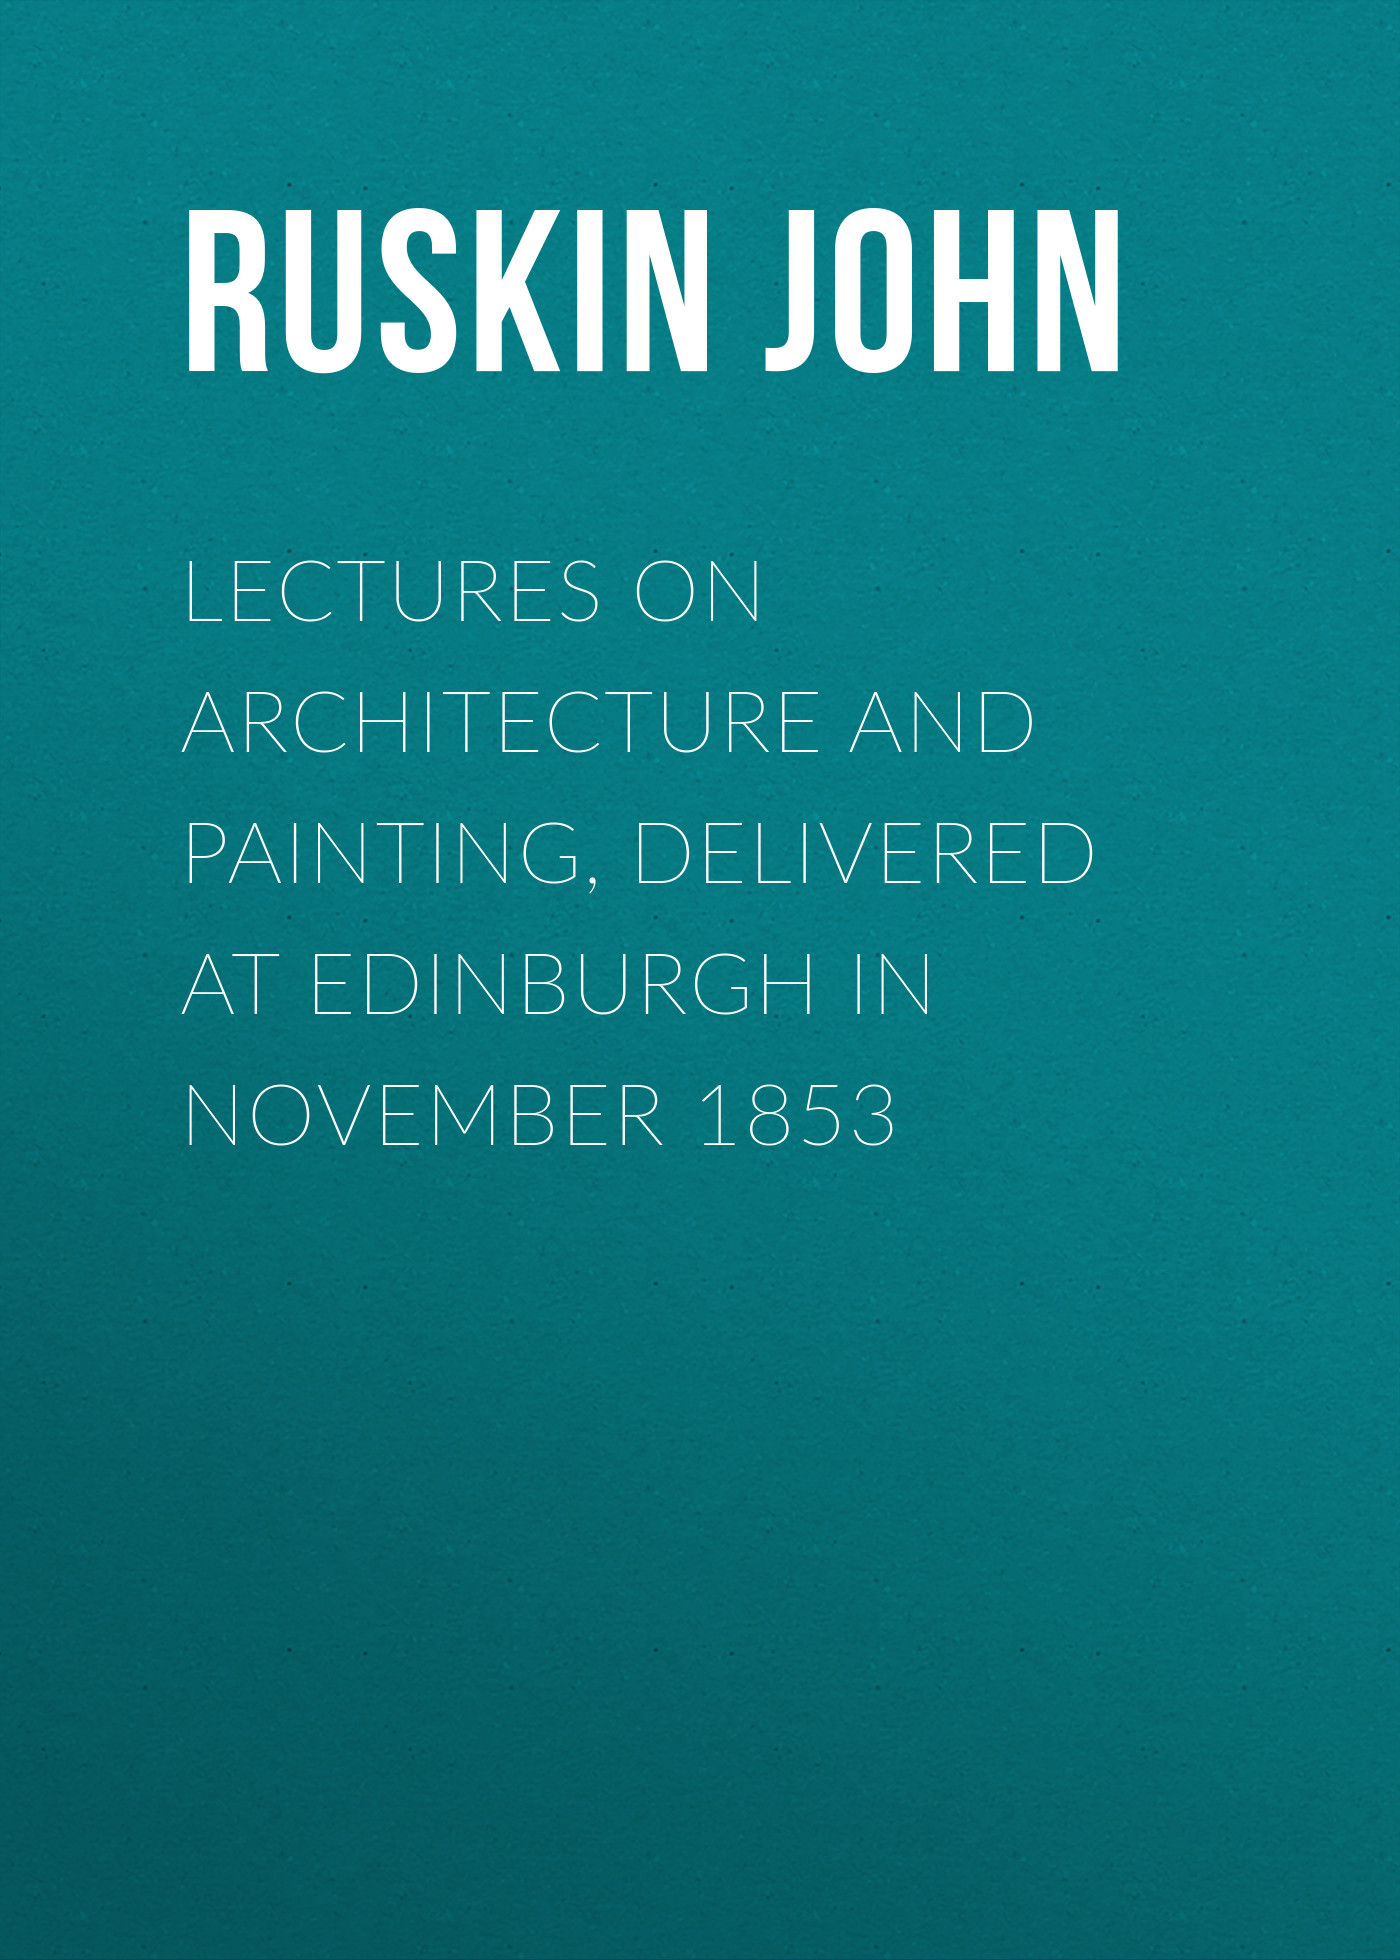 Ruskin John Lectures on Architecture and Painting, Delivered at Edinburgh in November 1853